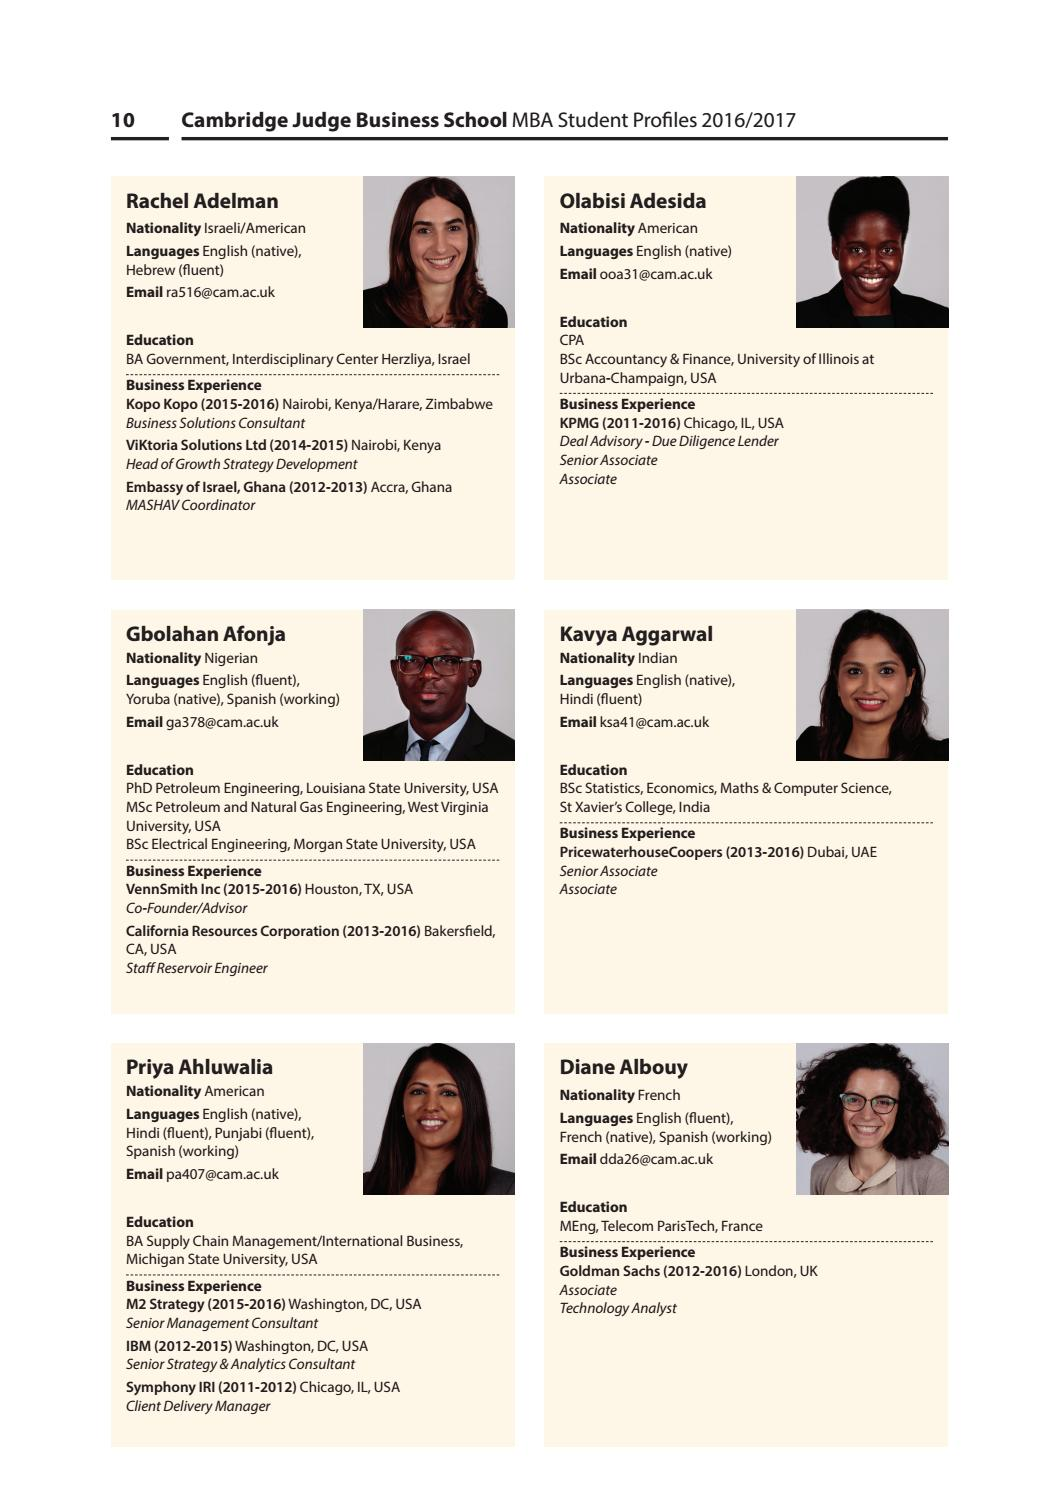 Mba profiles 2016 pr6 hi res by HSAG Communications trials - issuu